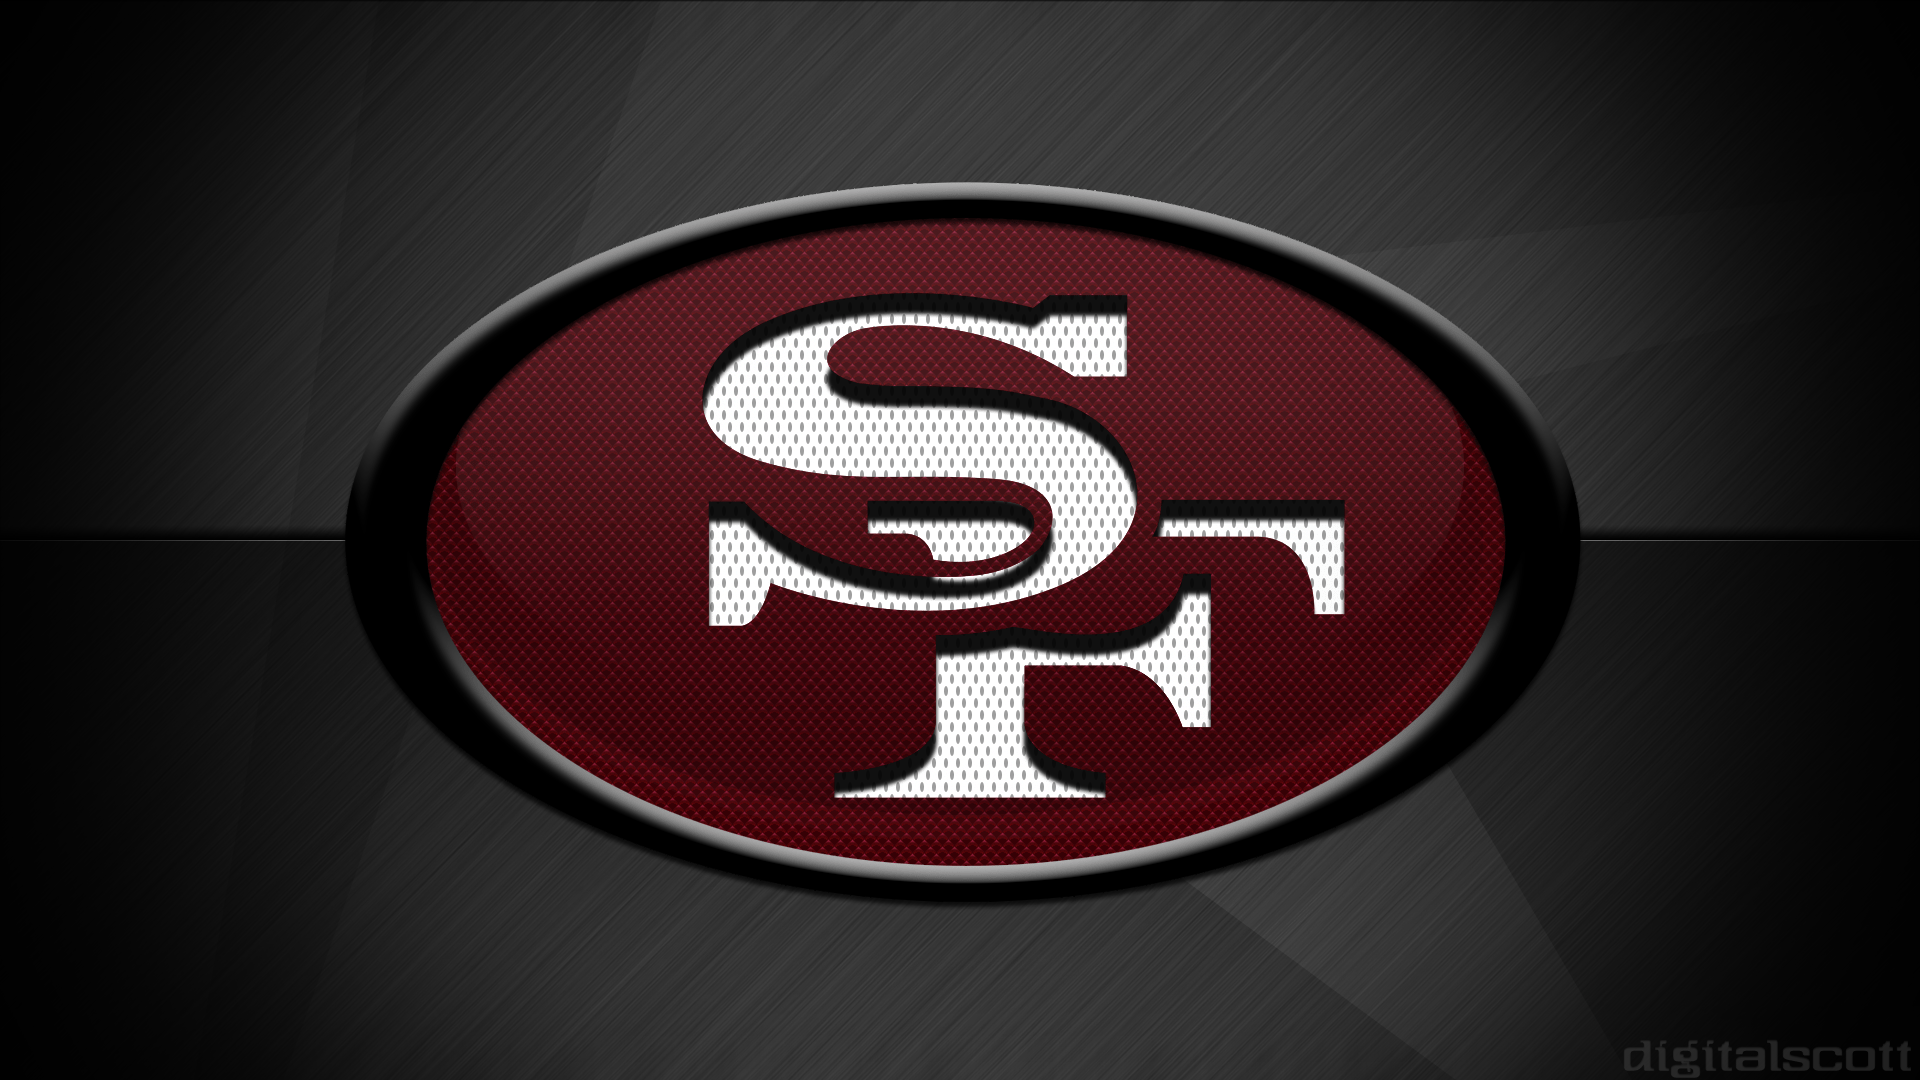 Cincinnati Bengals Hd Wallpaper 49ers Dr Odd